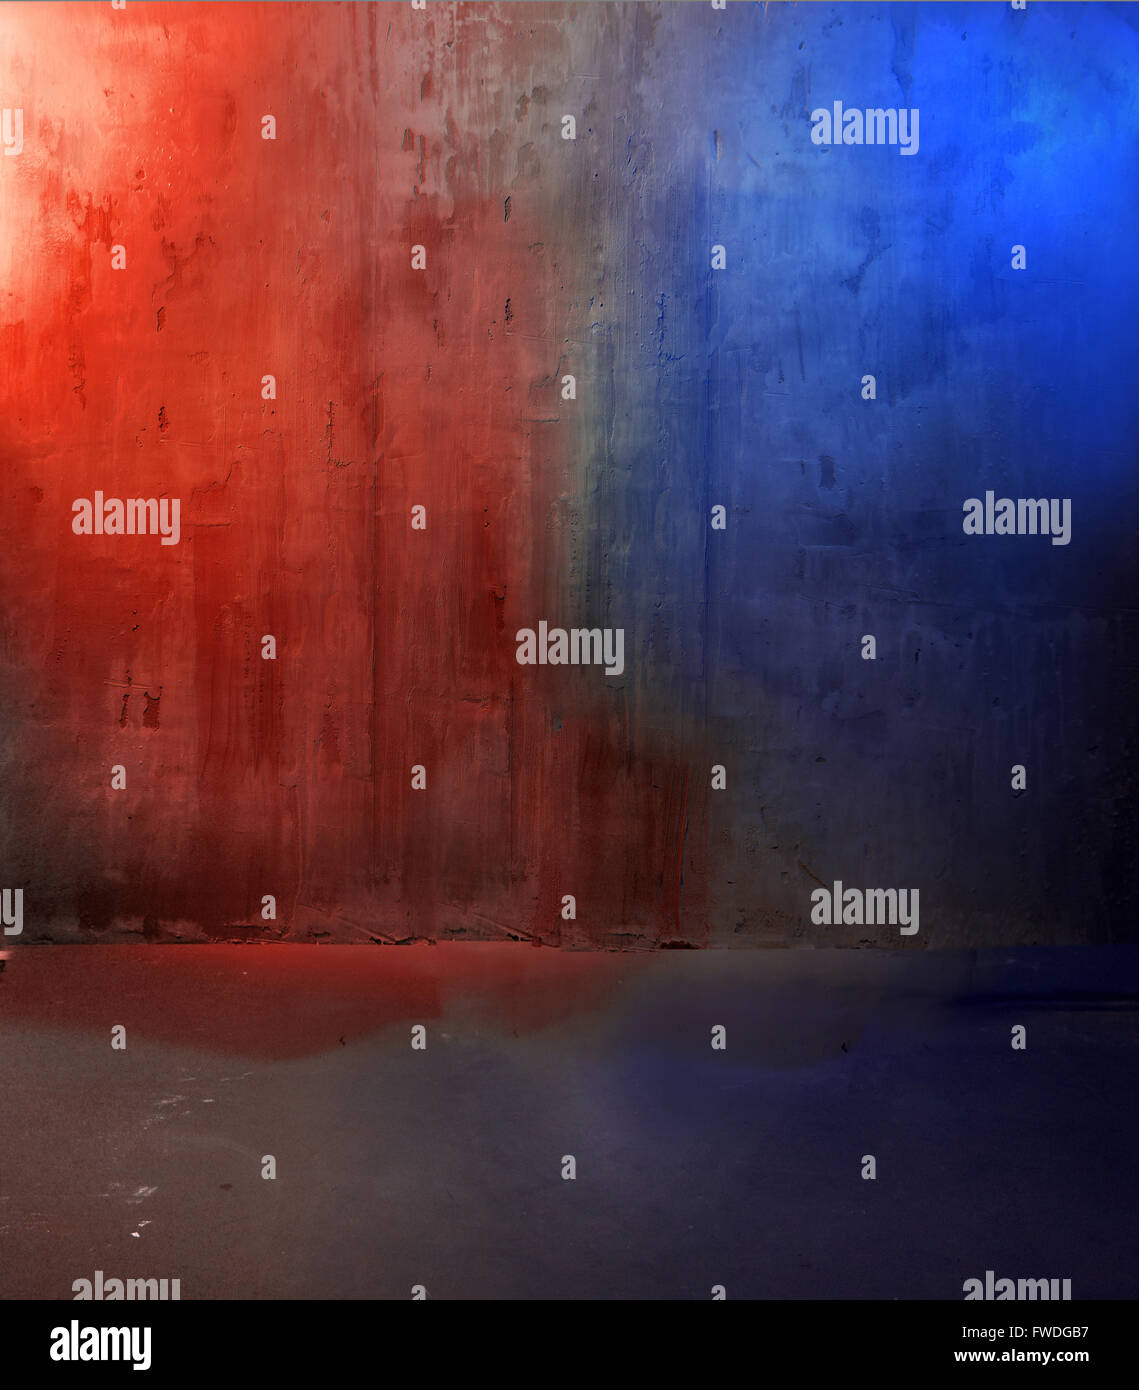 Photo of a dirty concrete wall - Stock Image